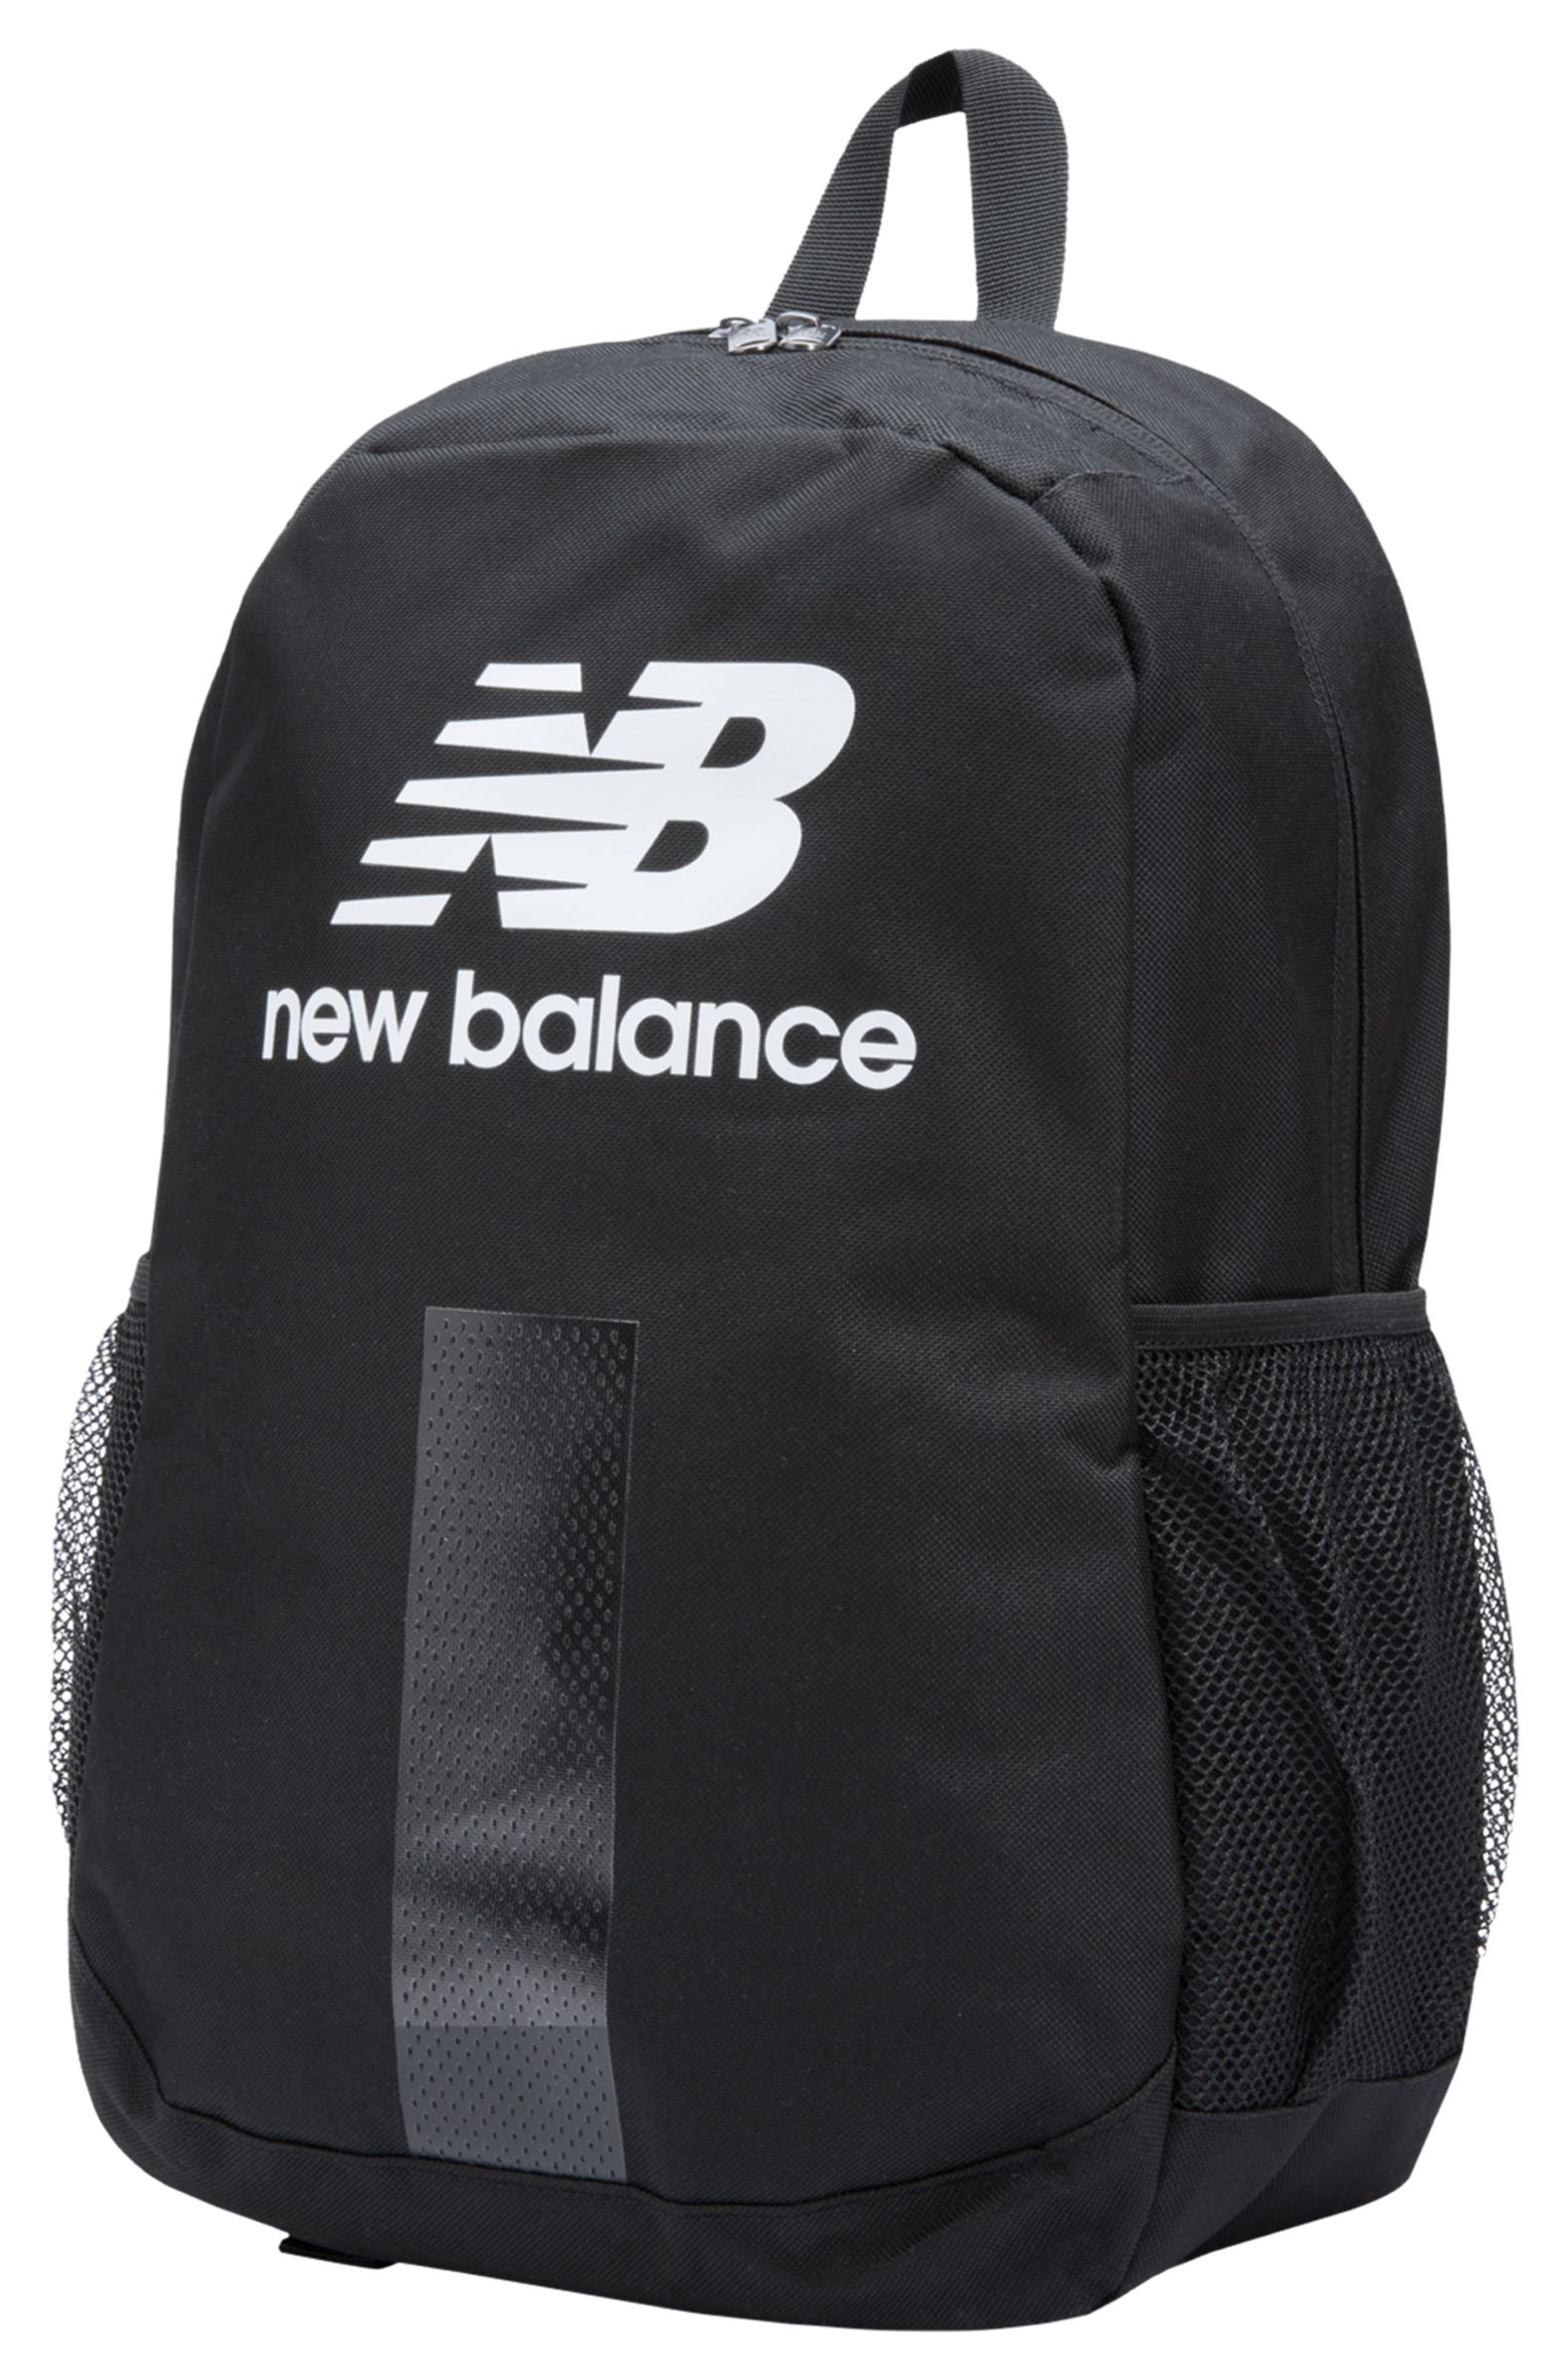 NB Eclipse Backpack, Black with White